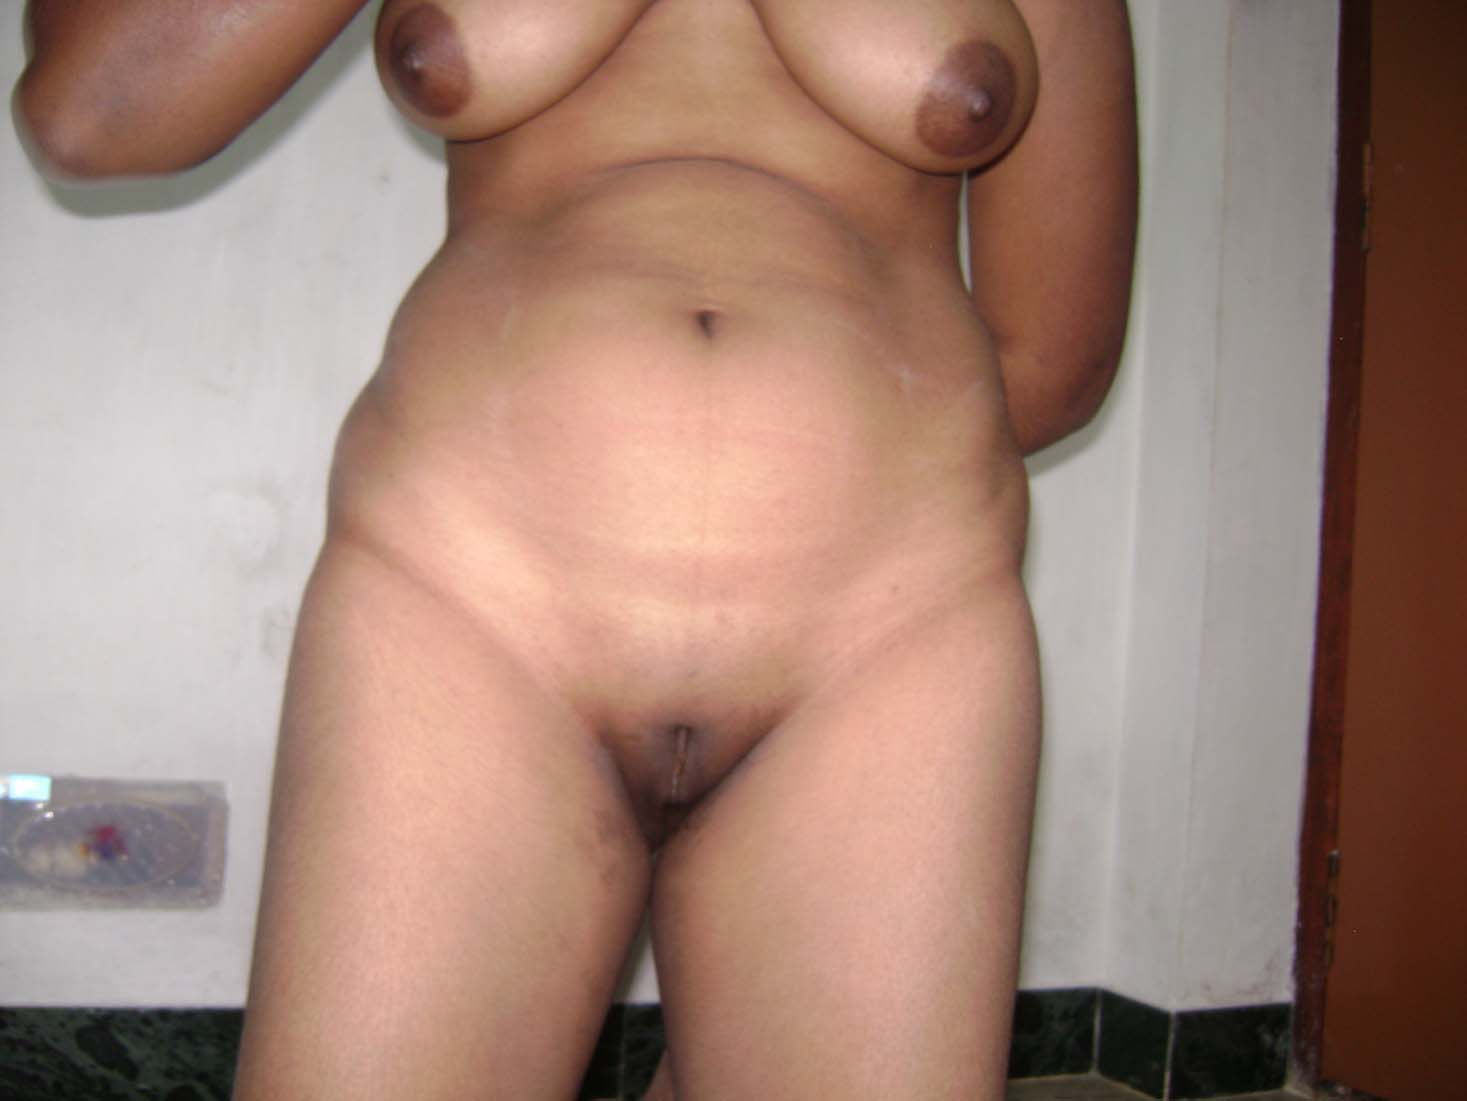 Tamil old actor nude really. join